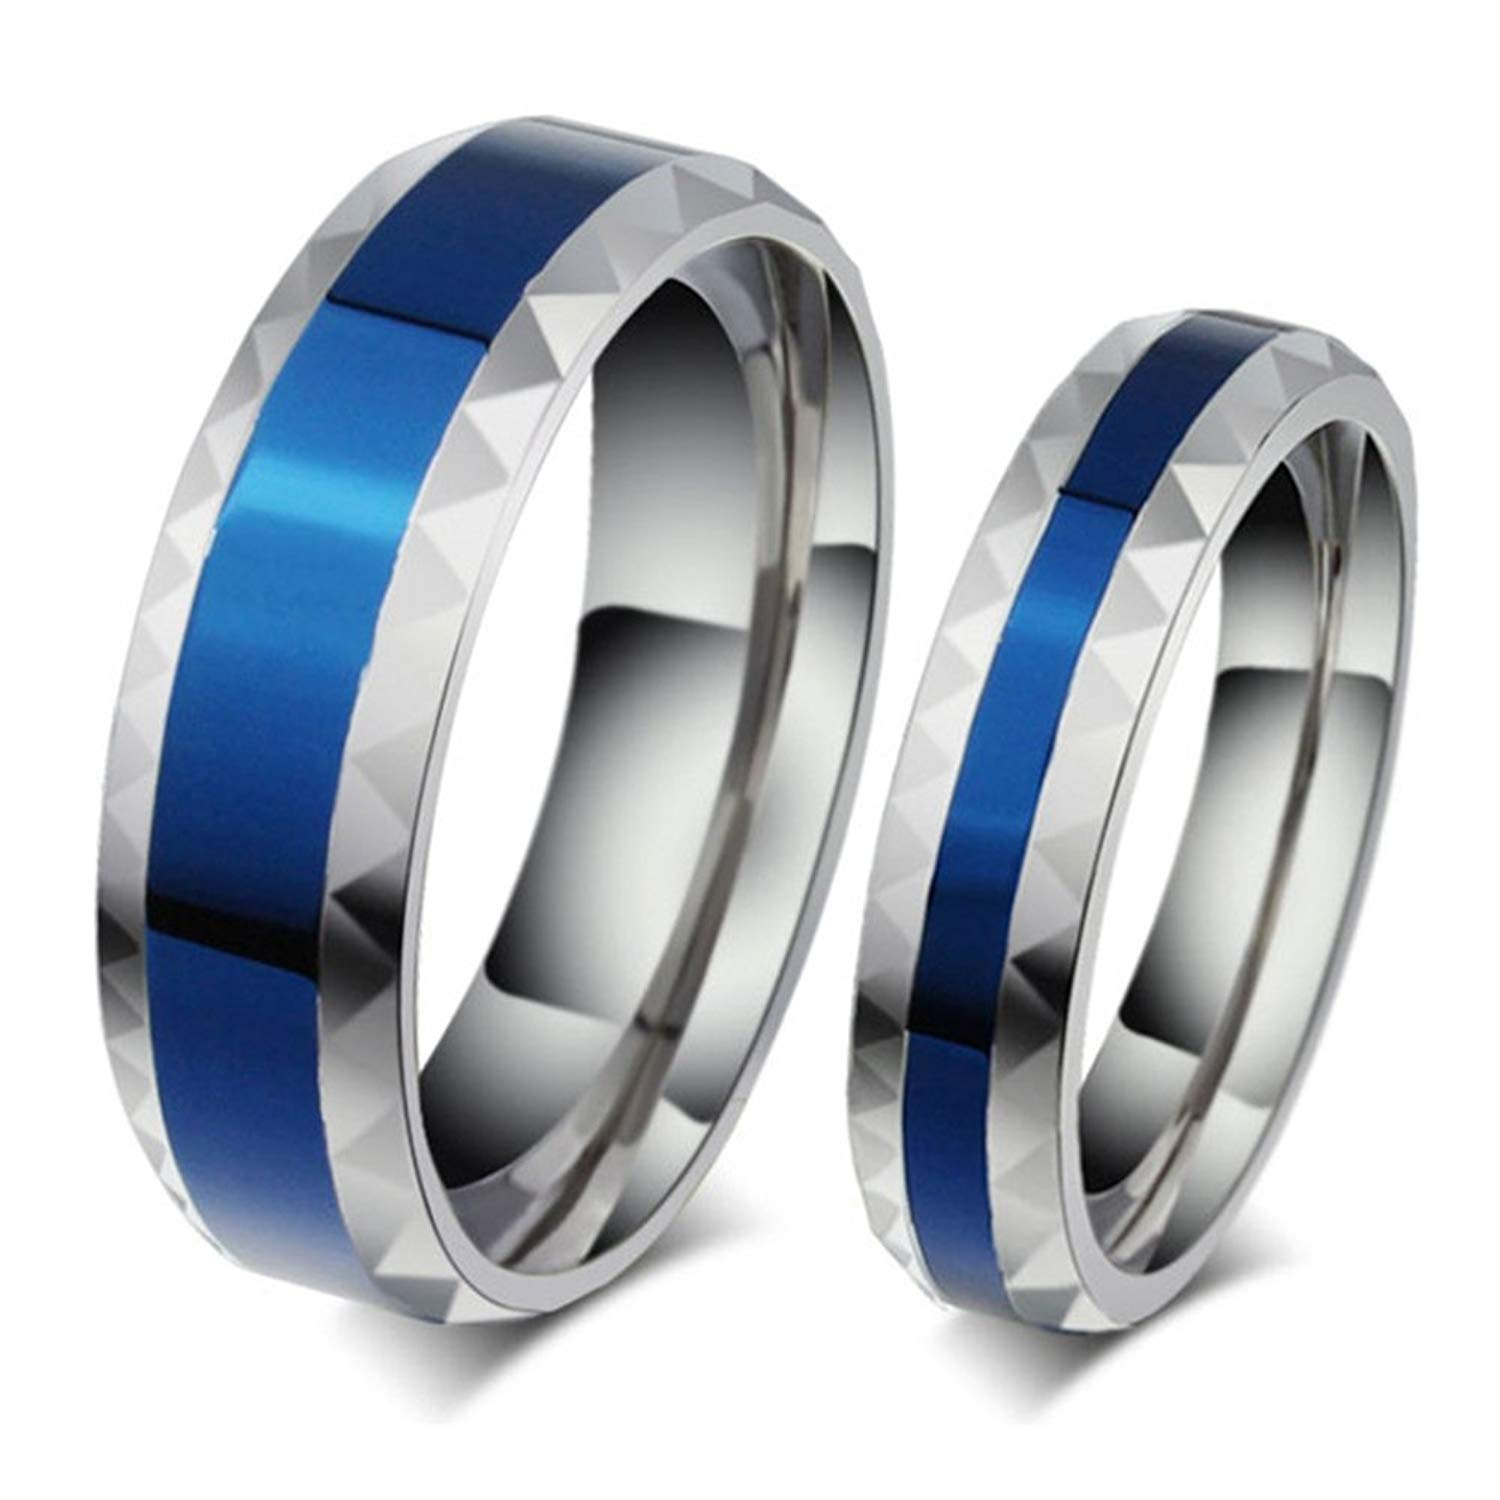 2d7991672a Get Quotations · Mens Womens Forever Love Promise Couples Rings for Him or  Hers Romantic Blue Elegant Titanium Steel